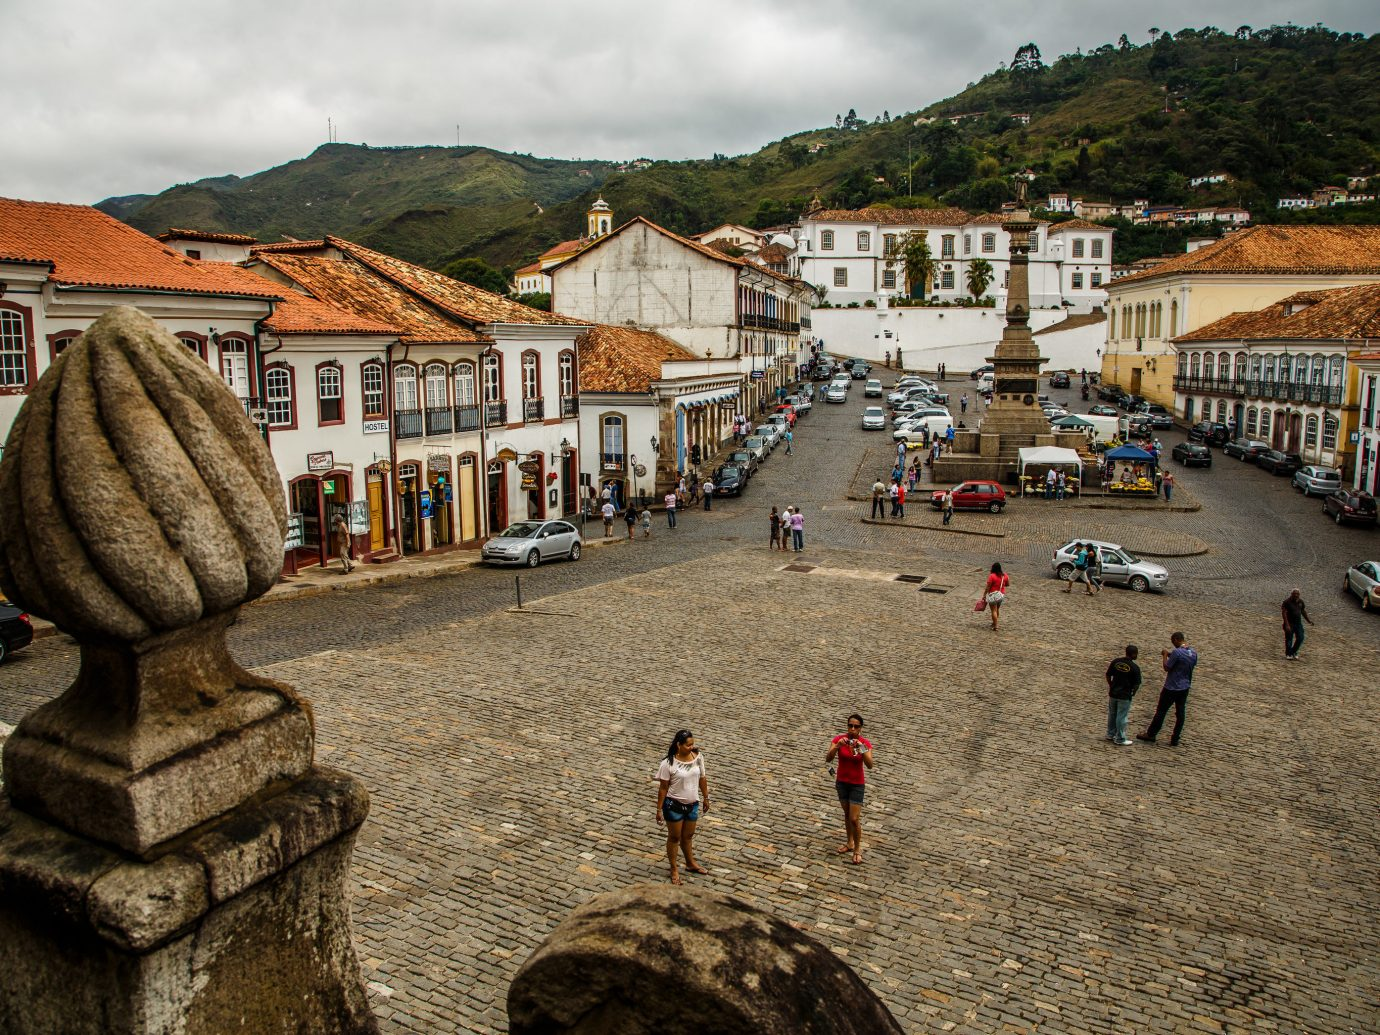 Beaches Brazil Trip Ideas sky outdoor Town vacation tourism ancient history Sea travel temple Village